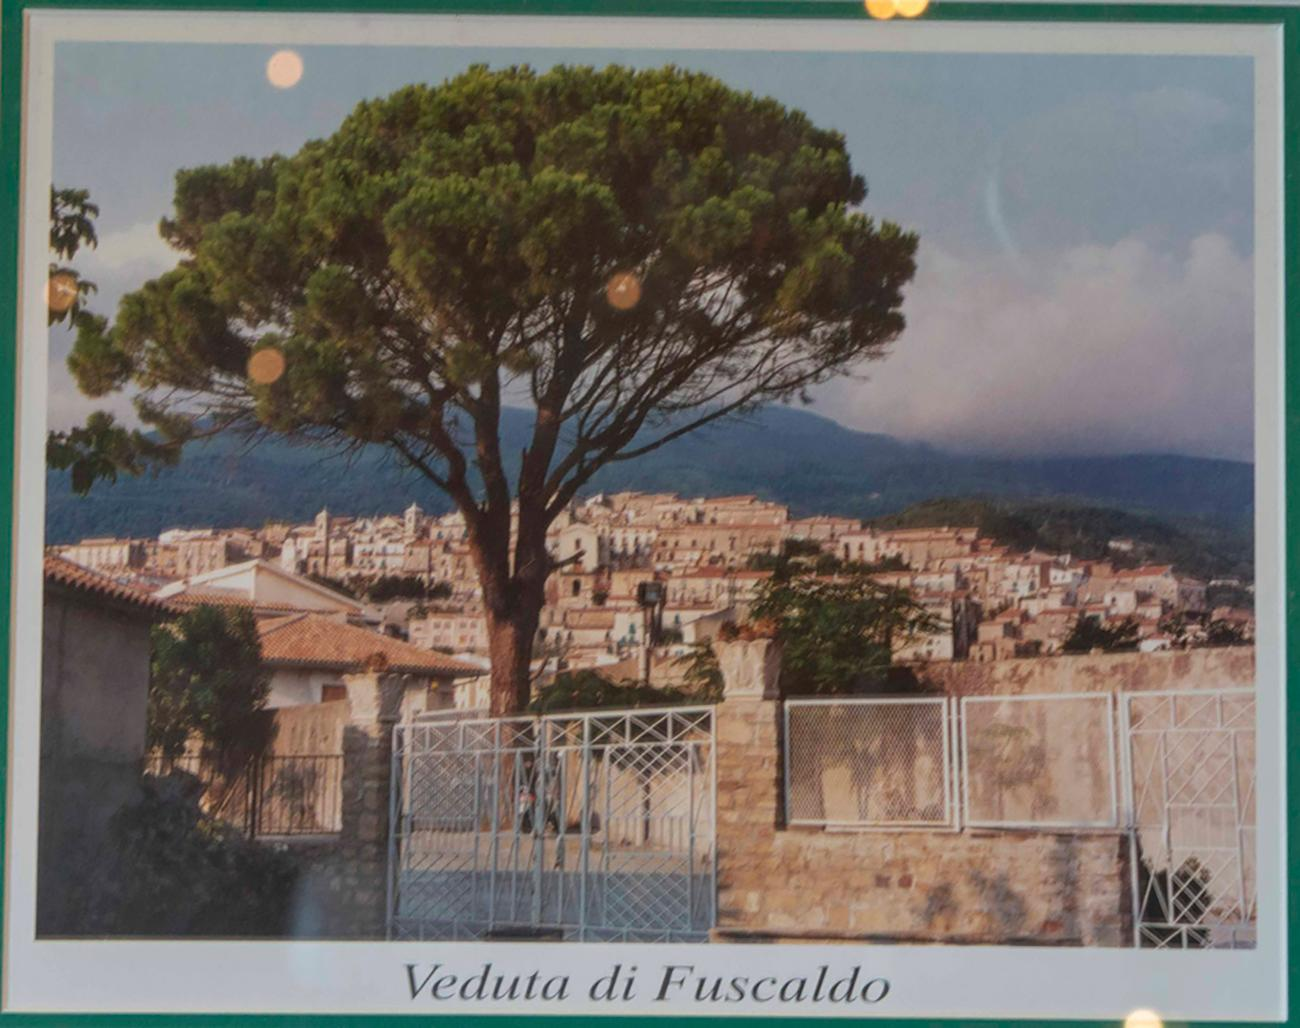 """Veduti di Fuscaldo"" translates to ""View of Fuscaldo"" in Italian, which is the city where the owners' ancestors lived in Italy.{ }/ Image: Joe Simon // Published: 3.10.19"